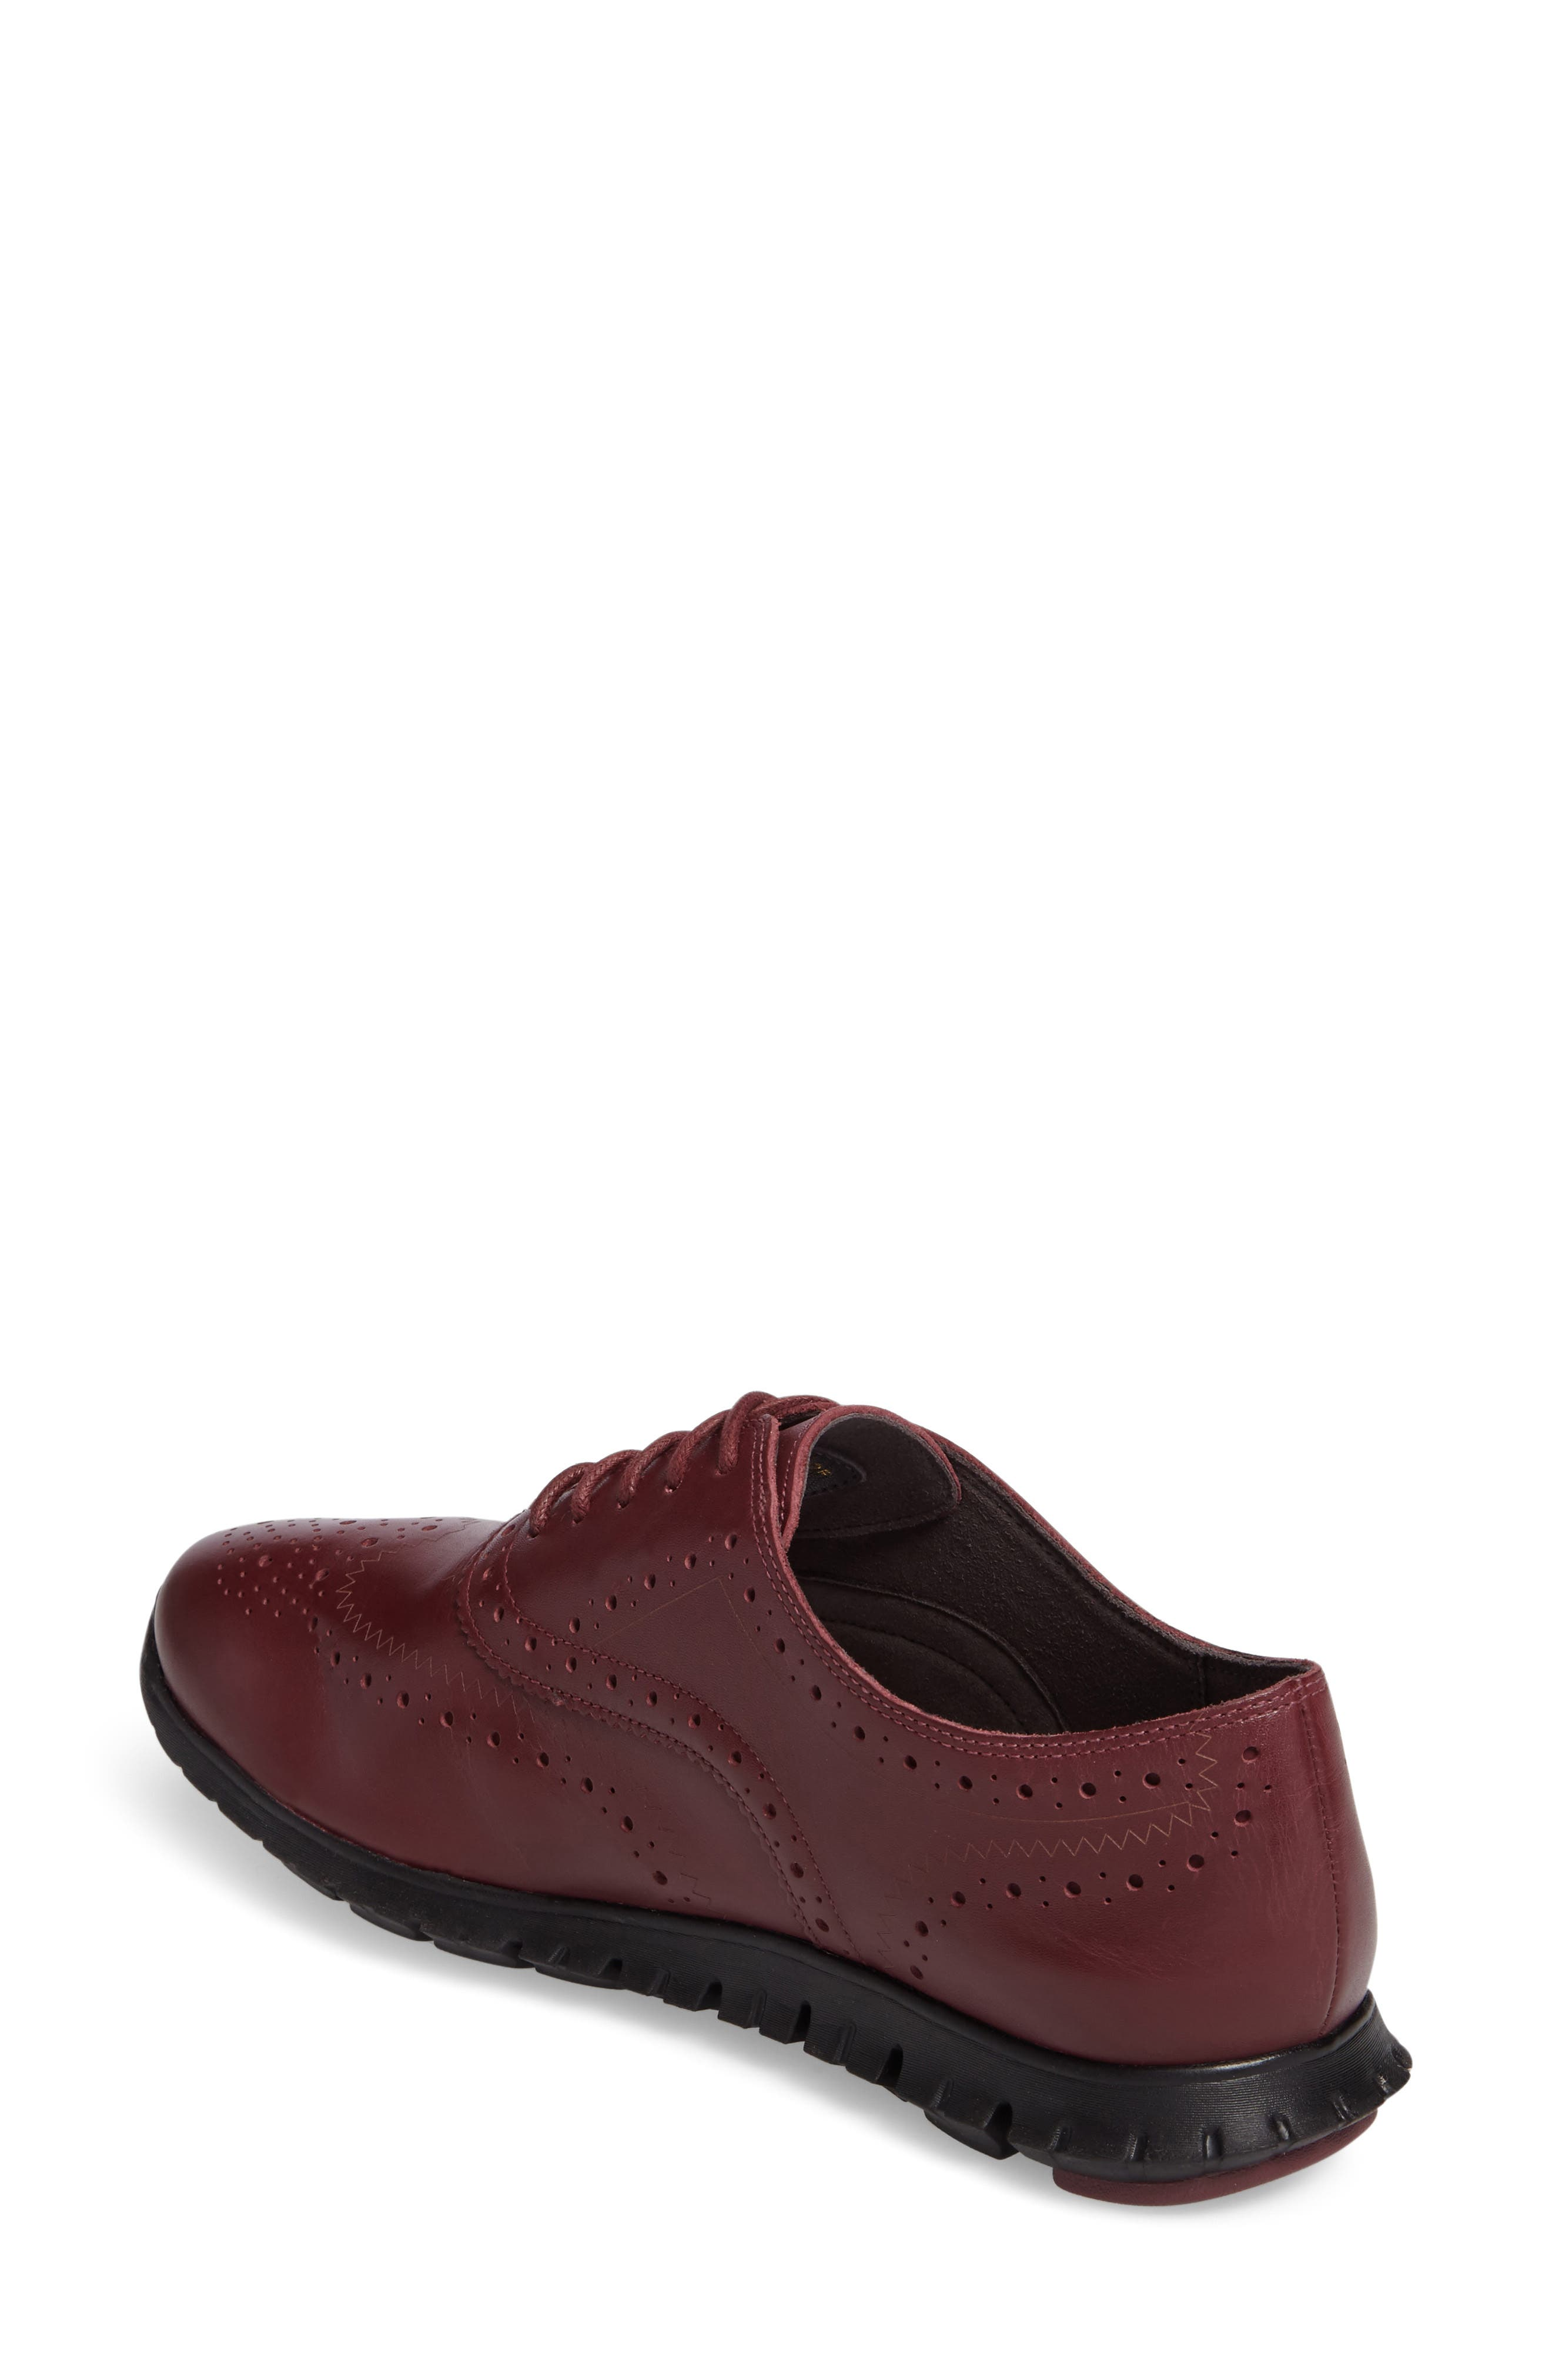 'ZeroGrand' Perforated Wingtip,                             Alternate thumbnail 91, color,